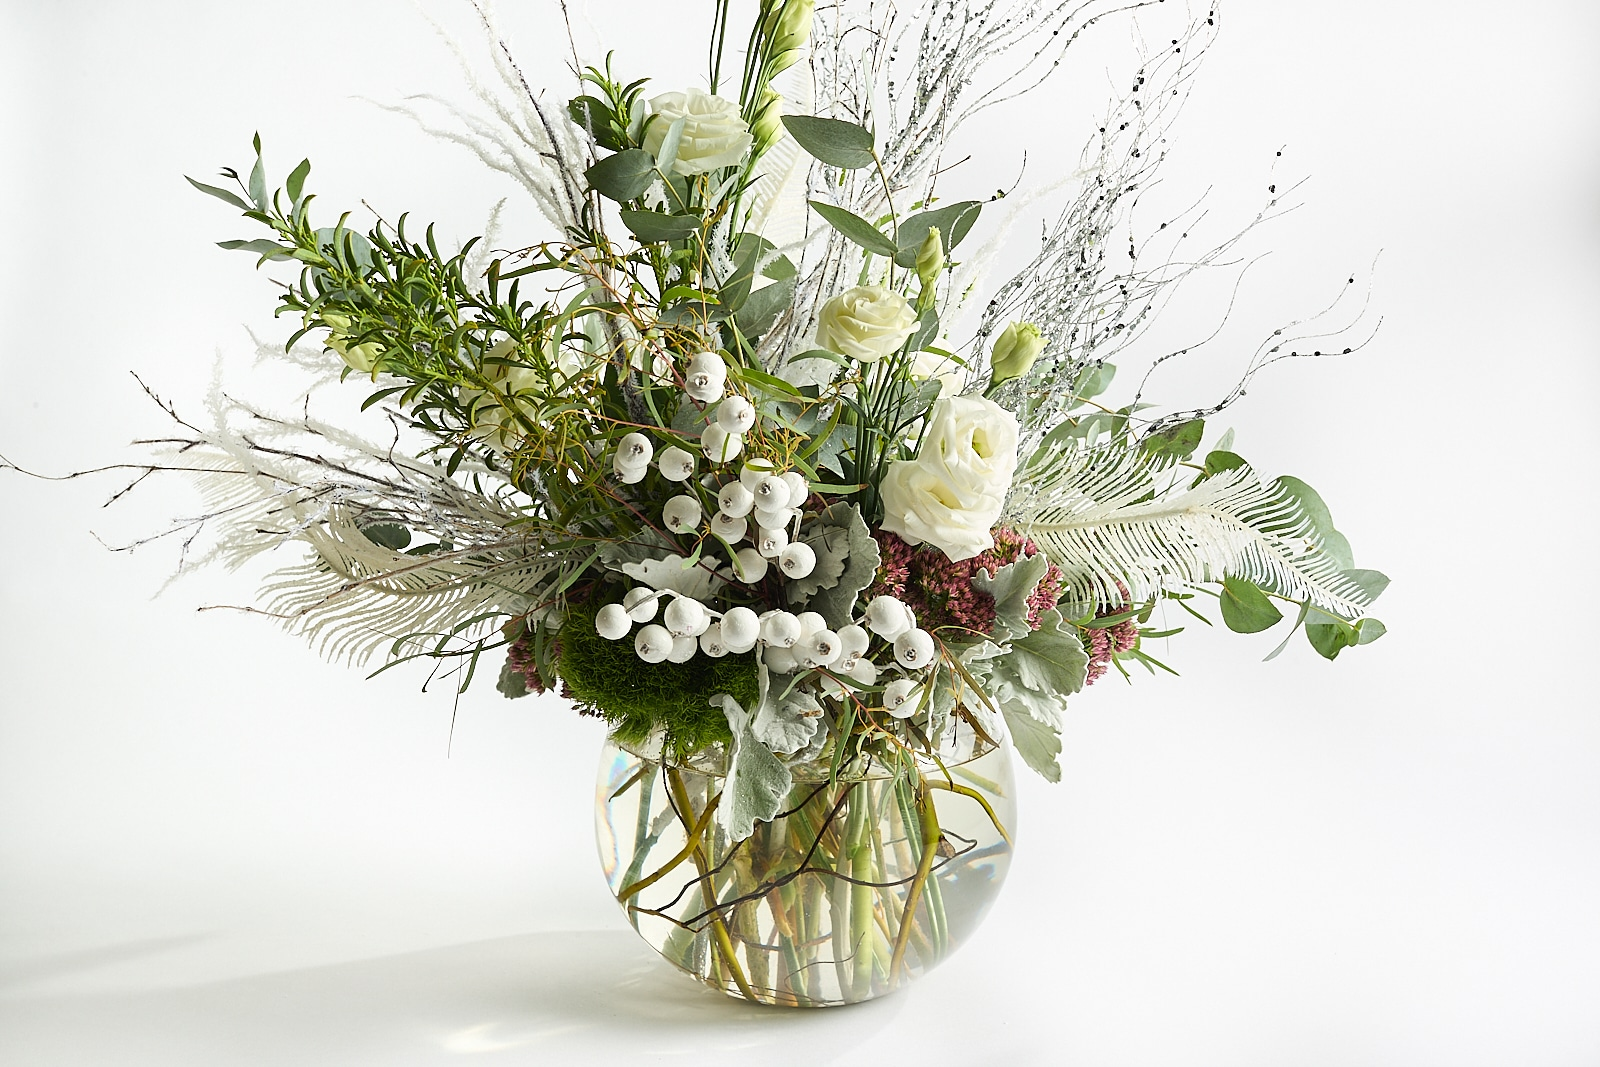 white and green October floral arrangement from Zupan's Markets